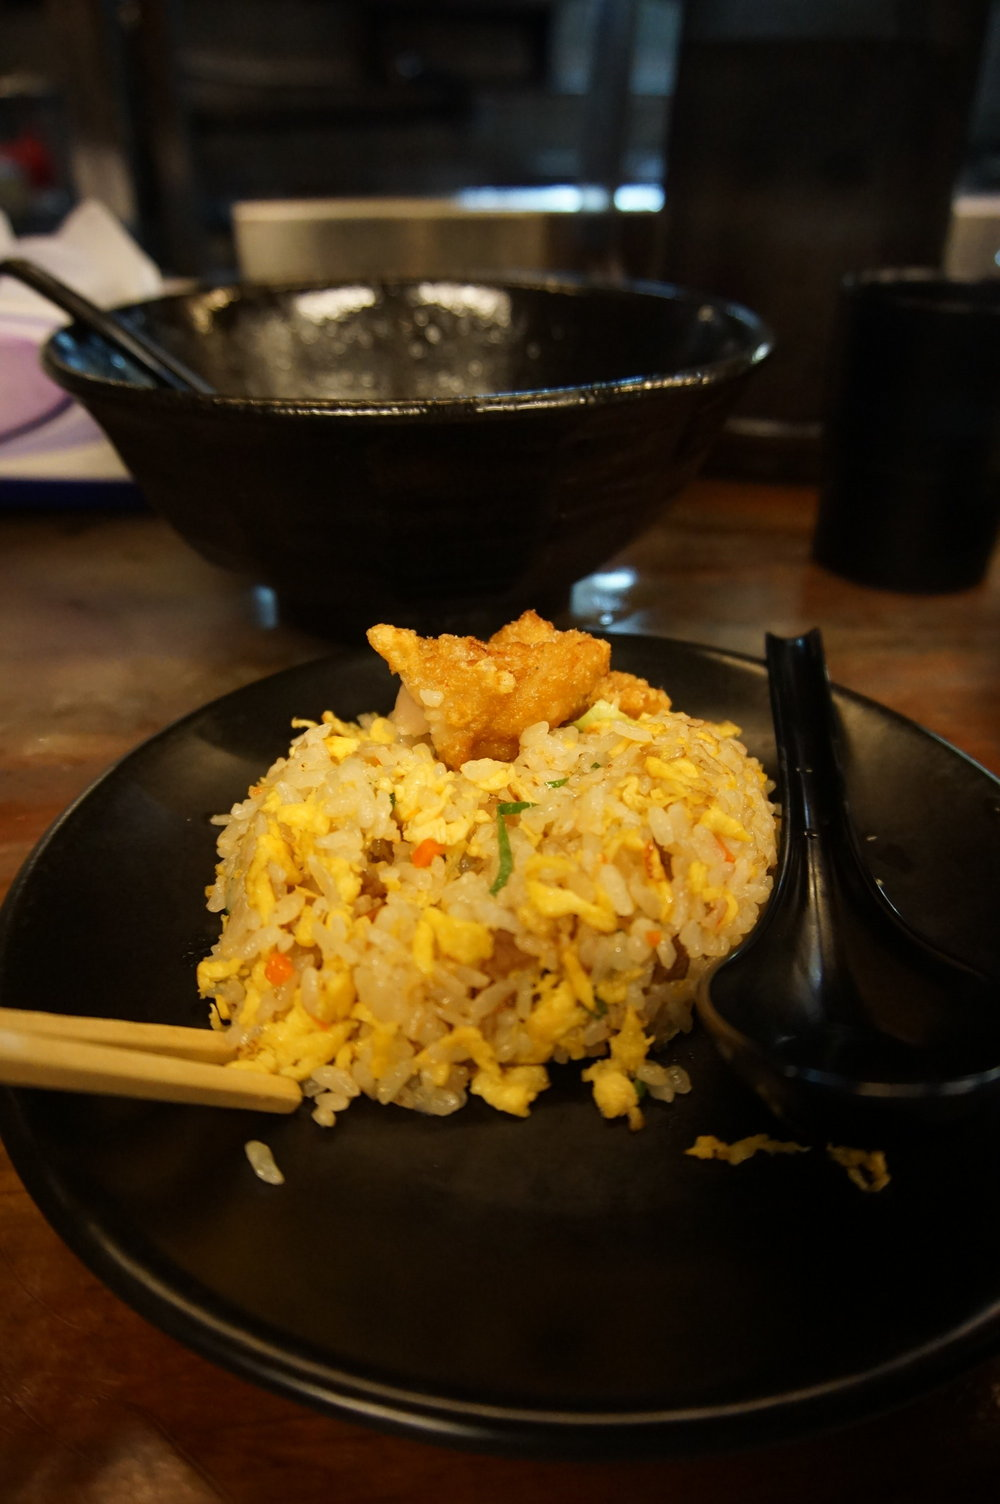 Post ramen: free fried rice! Very enjoyable with our fried chicken.